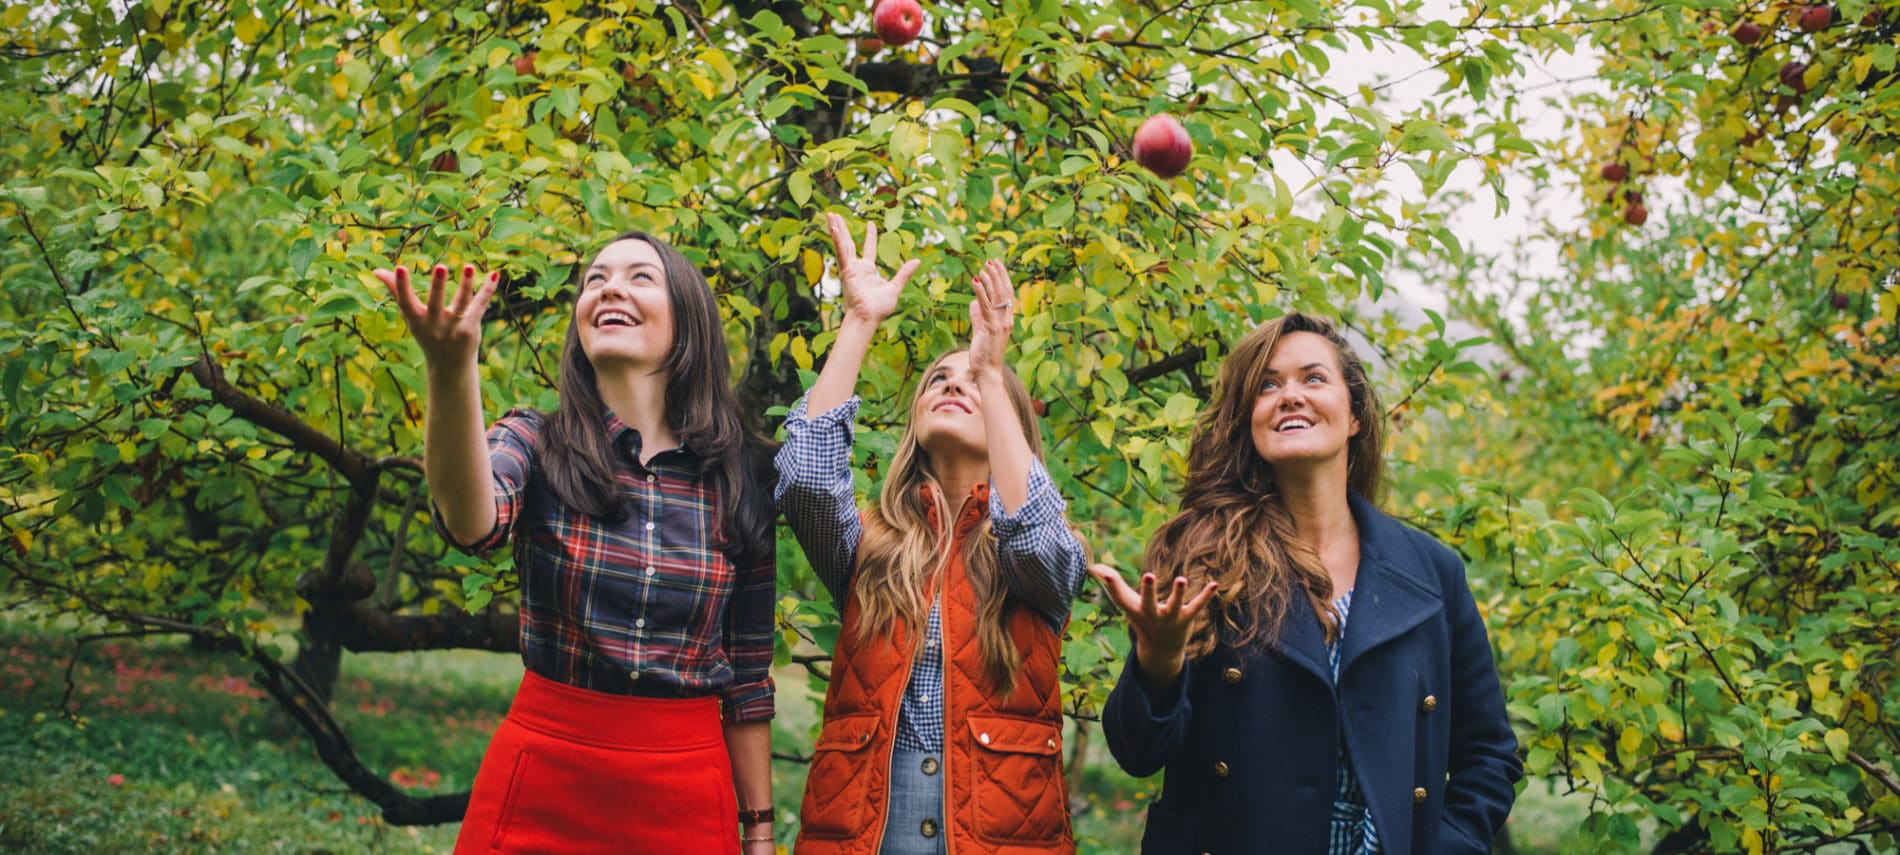 three girls picking apples